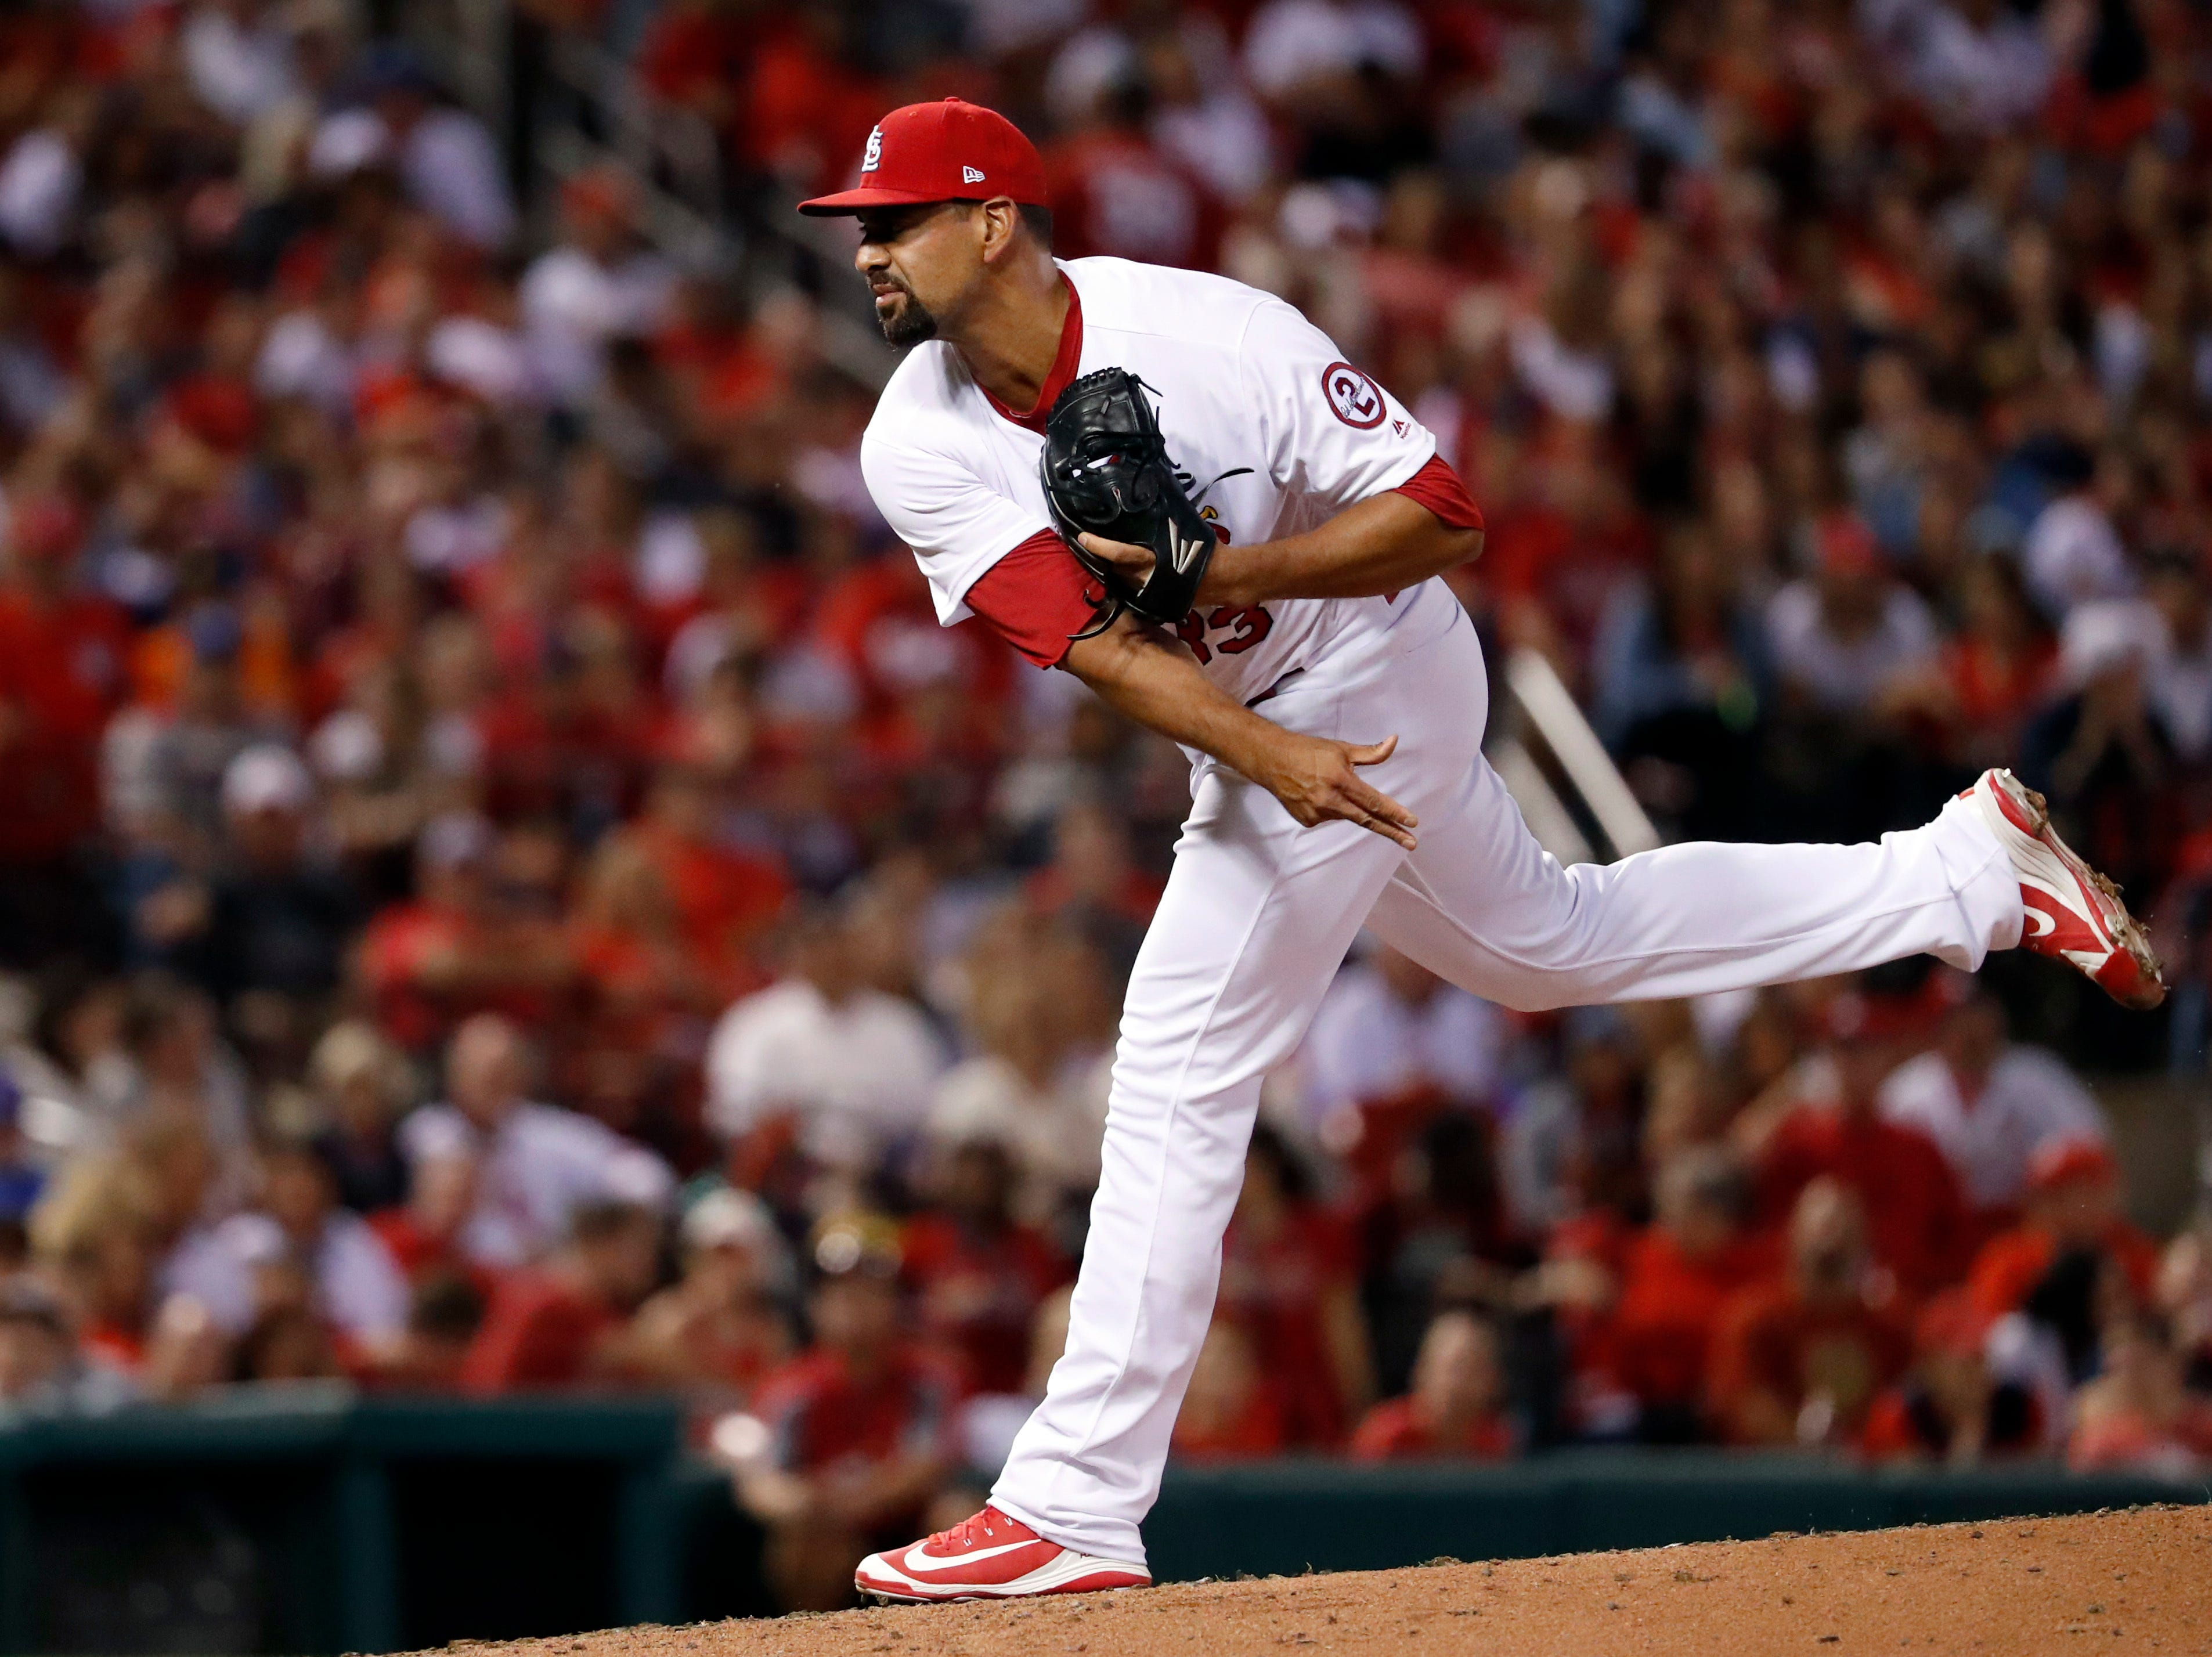 St. Louis Cardinals starting pitcher Tyson Ross throws during the fifth inning of a game against the San Francisco Giants Friday, Sept. 21, 2018, in St. Louis.